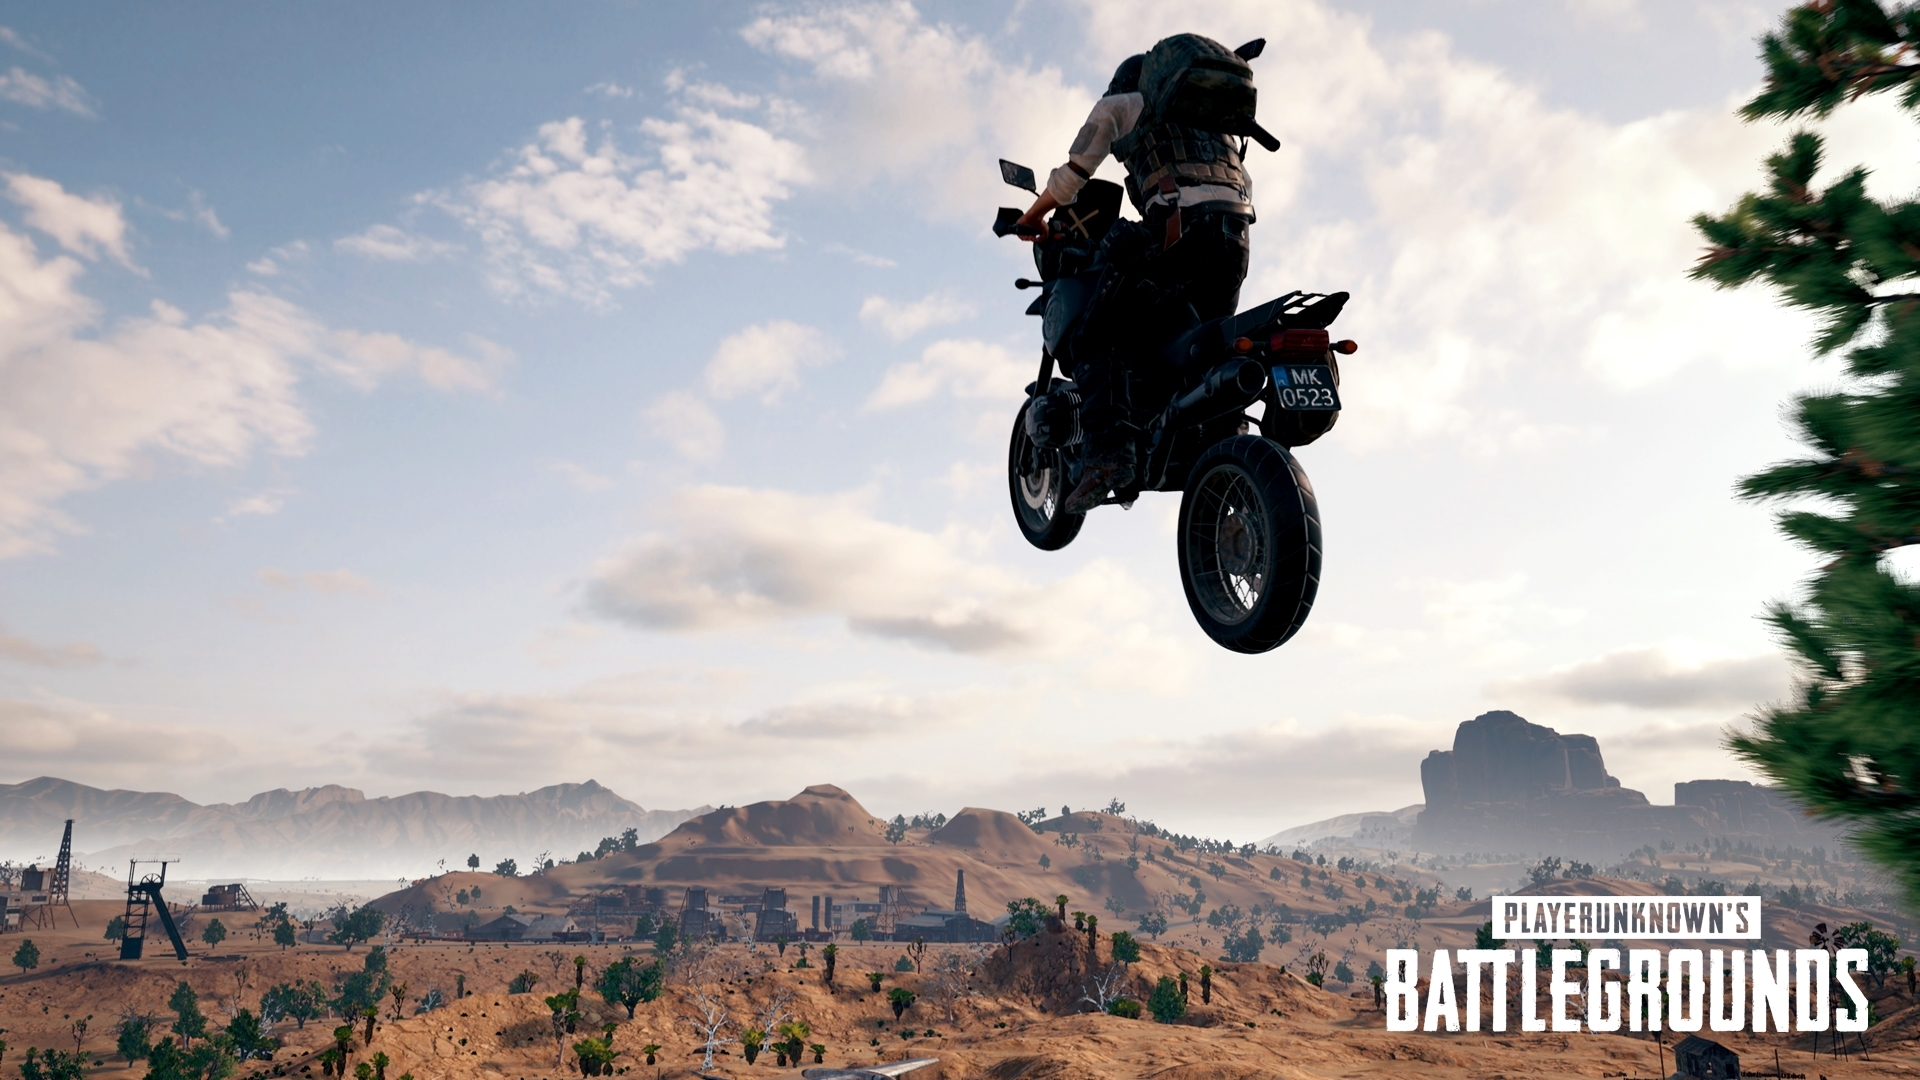 Pubg Bike Rider 4k Hd Games 4k Wallpapers Images: PUBG Will Get Ping Based Matchmaking